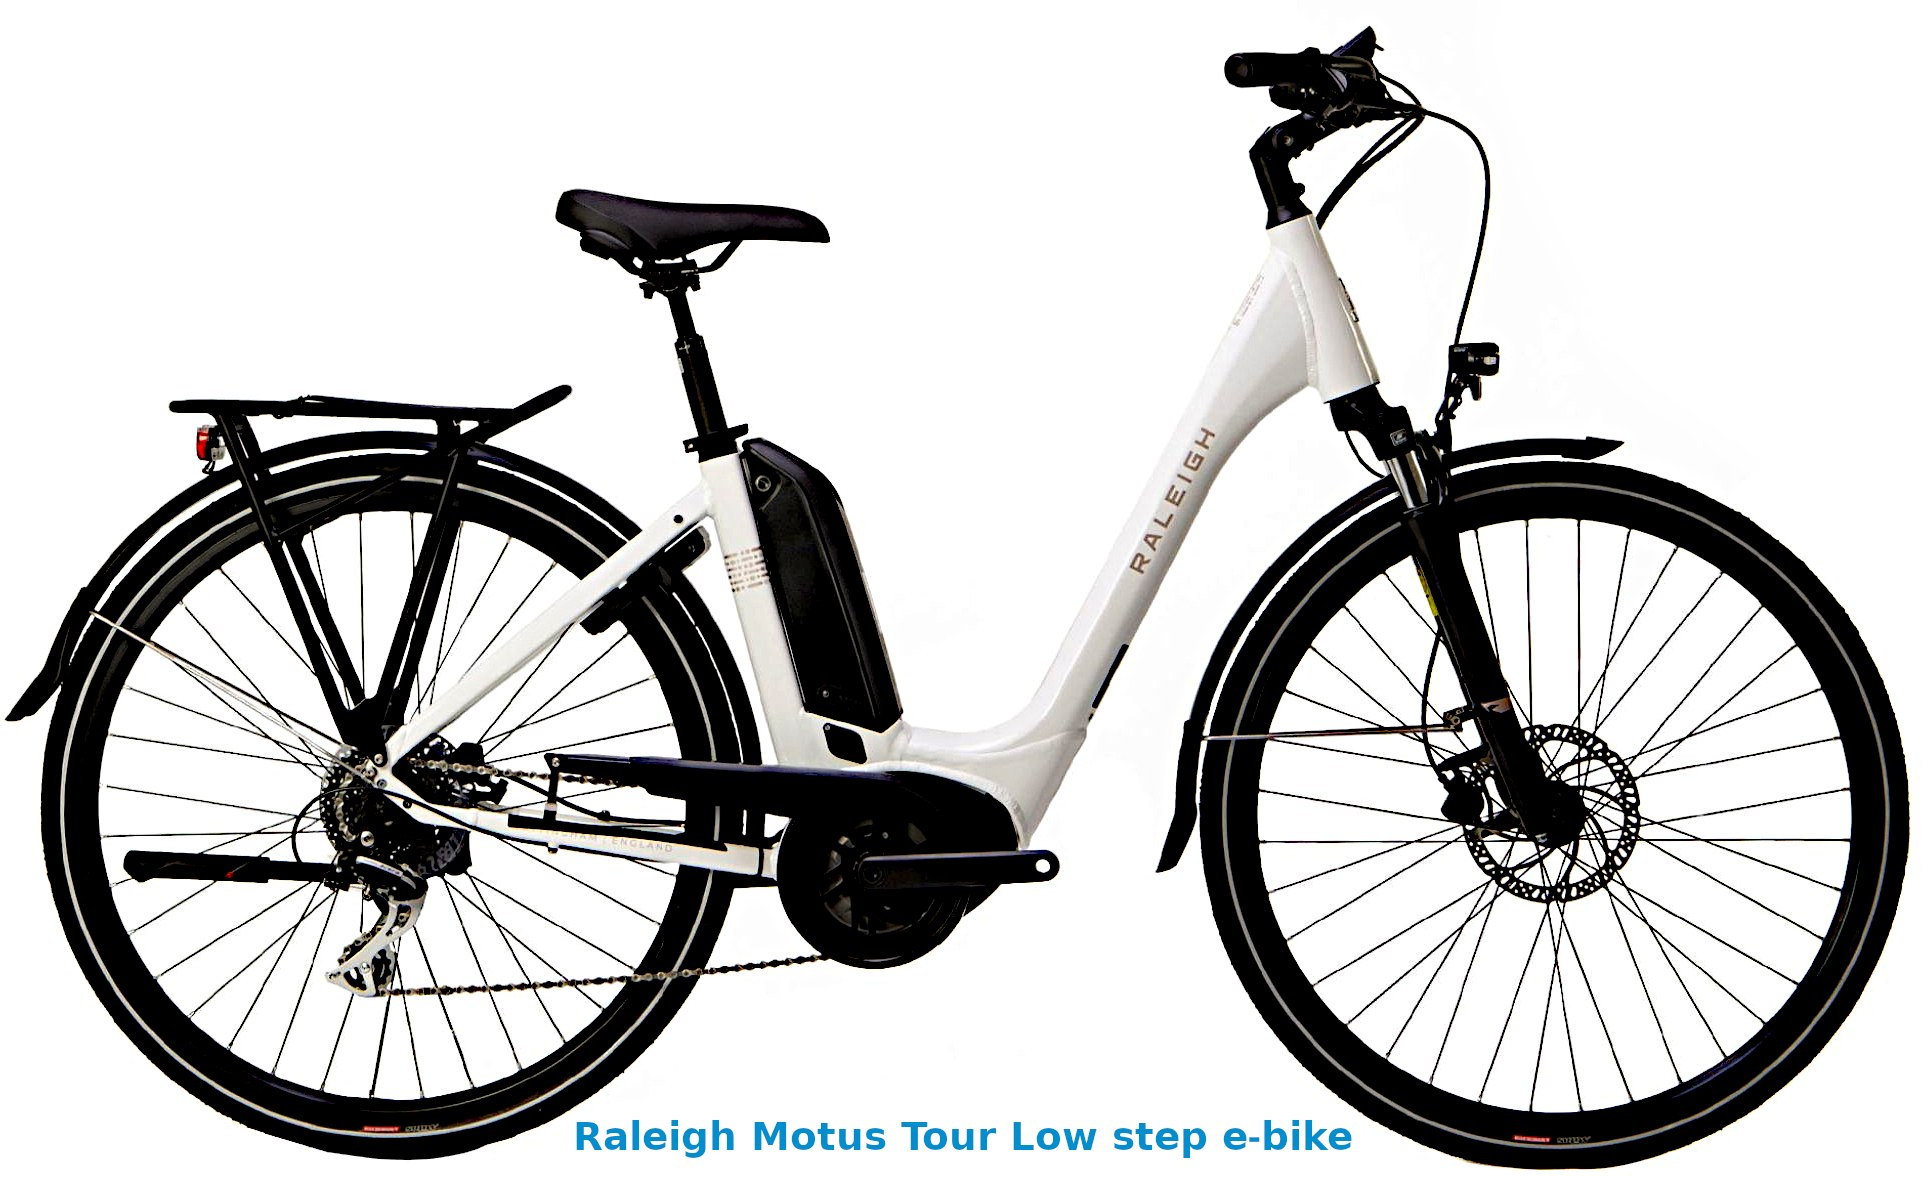 Raleigh Motus Tour e-bike